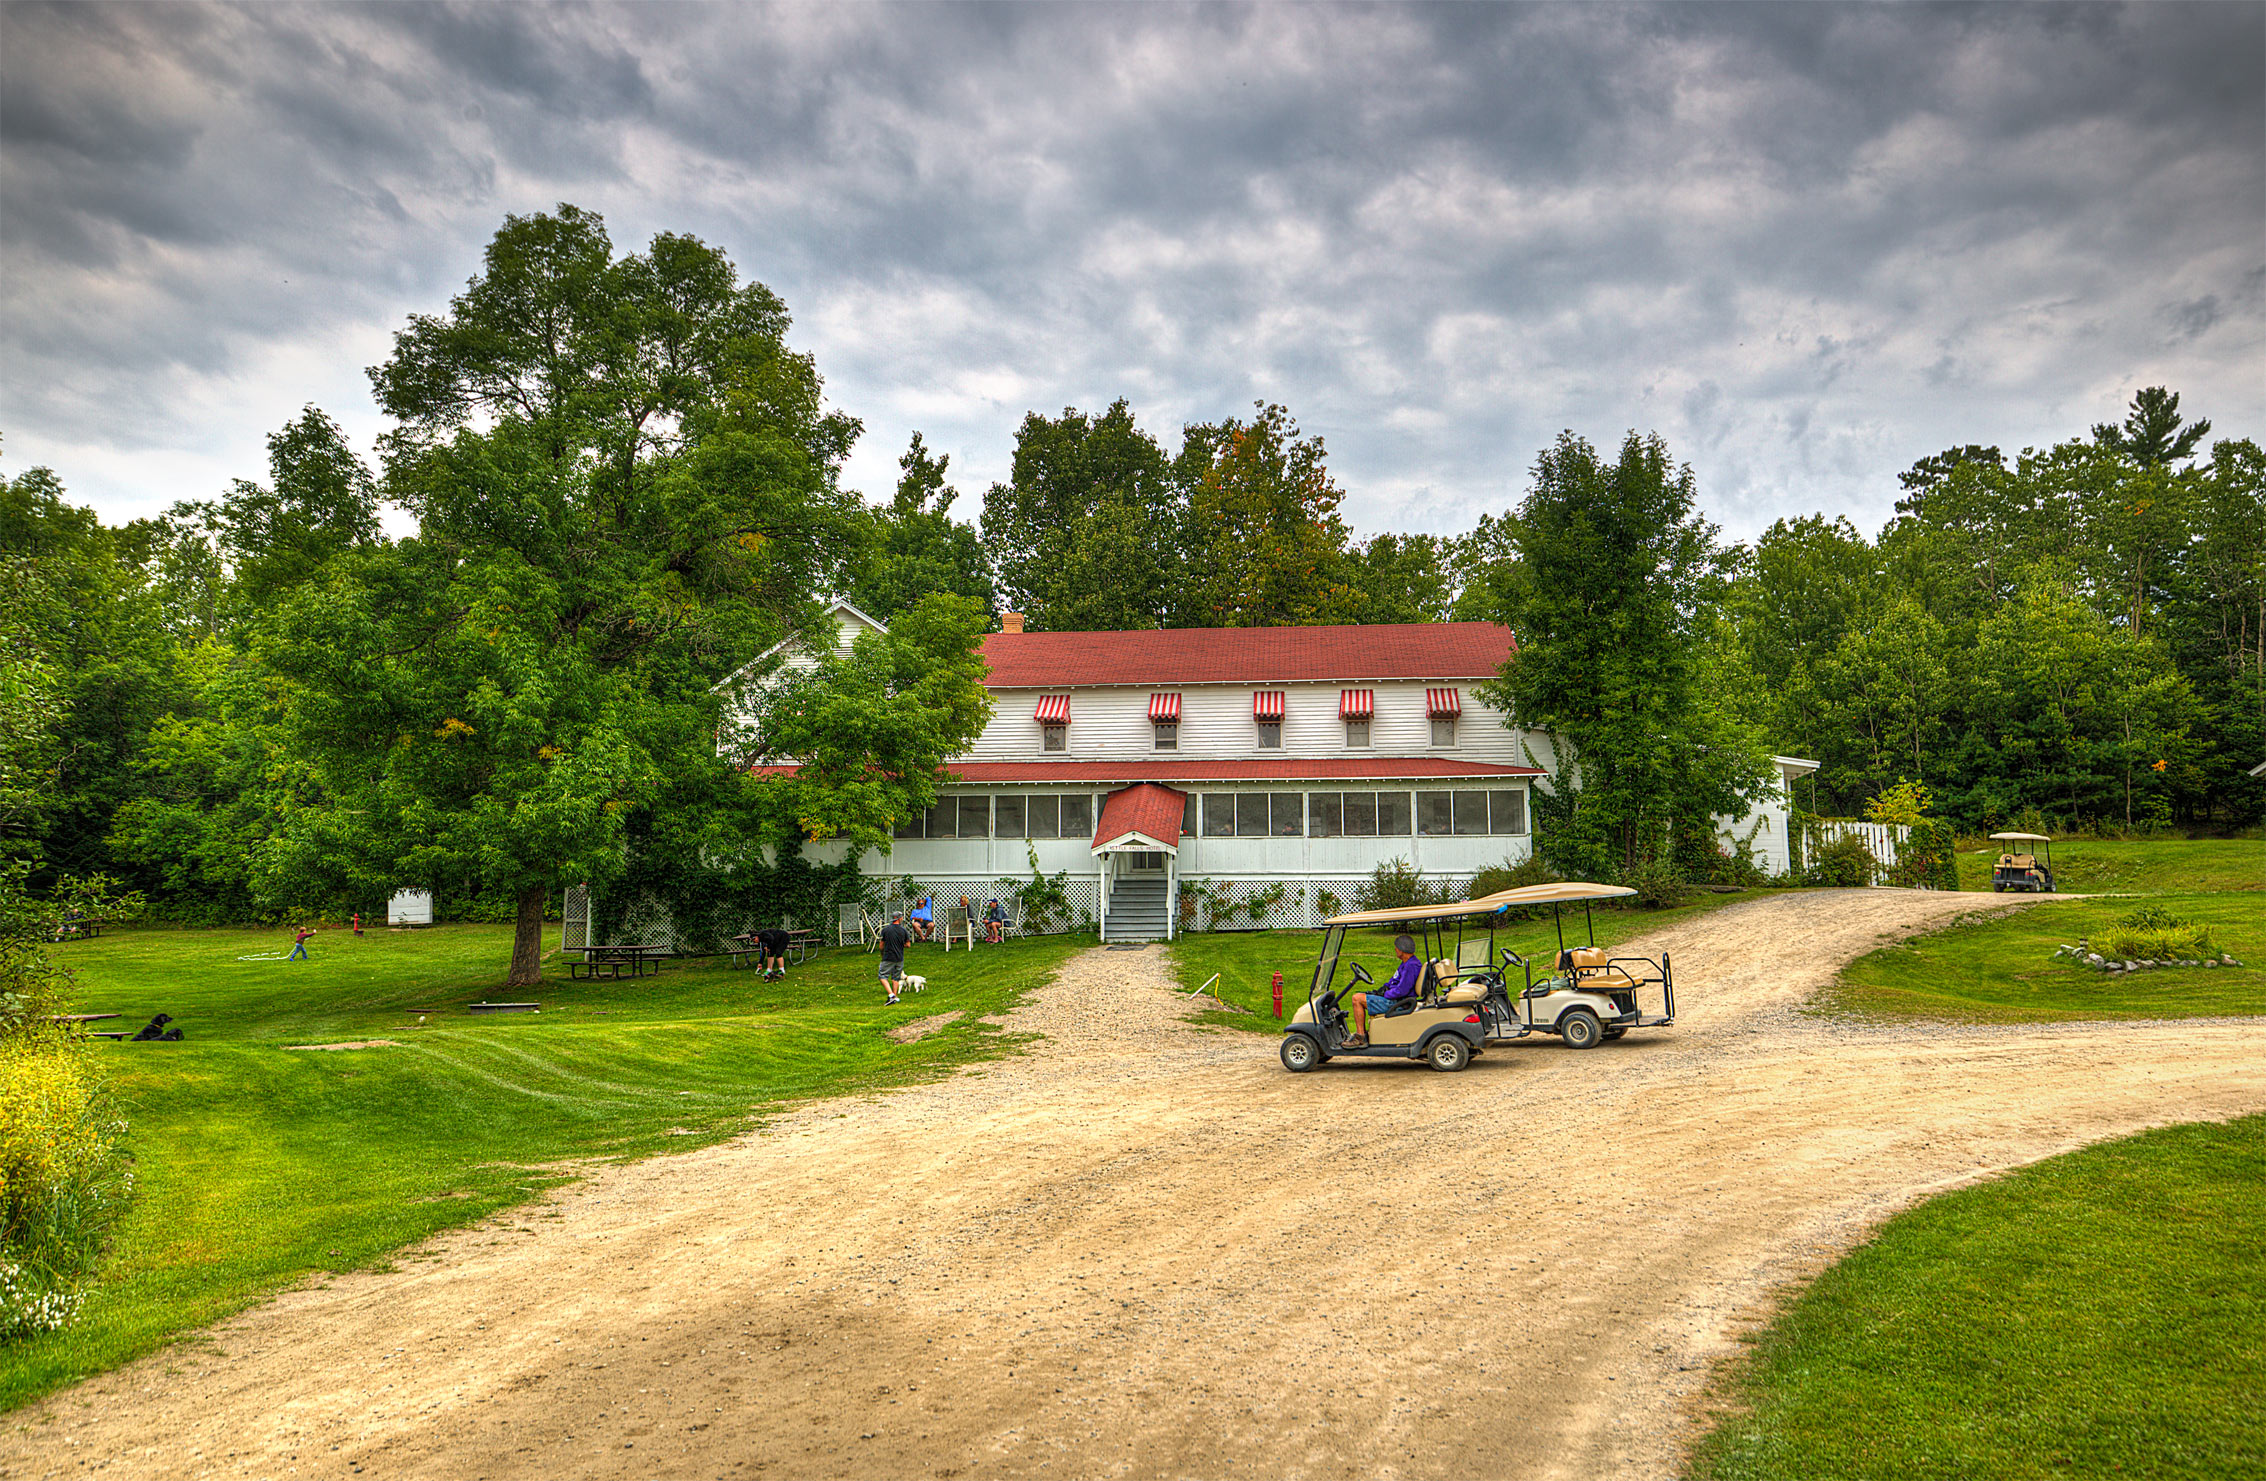 The Kettle Falls Hotel in Voyageurs National Park